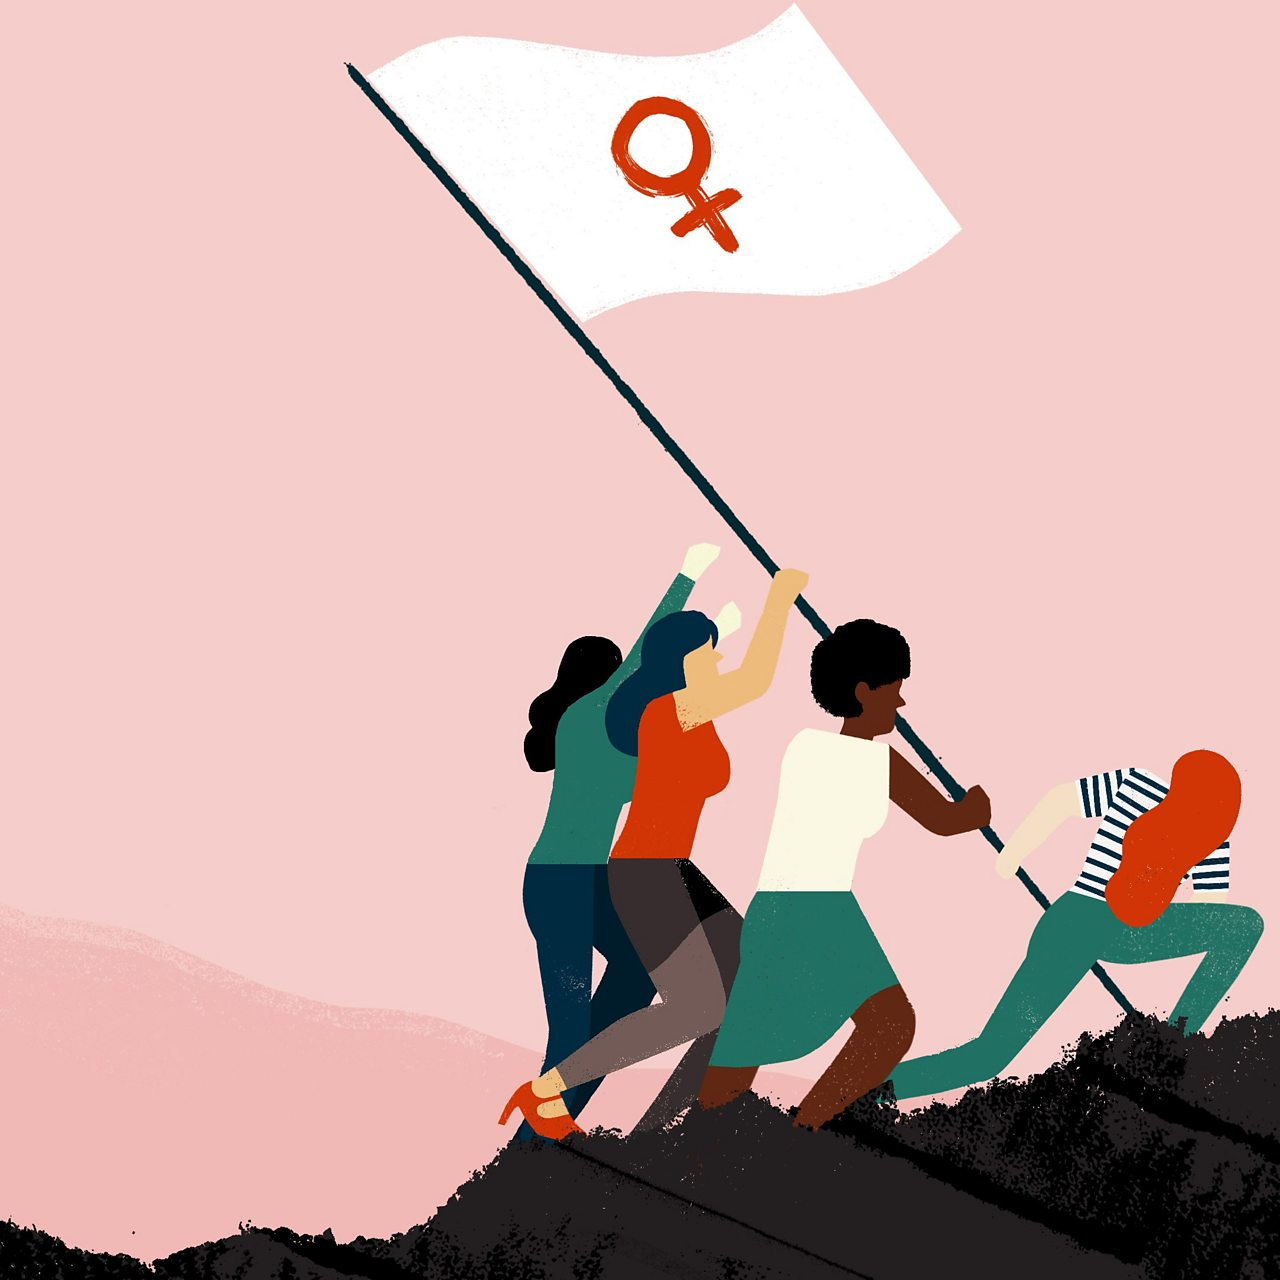 an illustration depicts women raising a flag with the female symbol